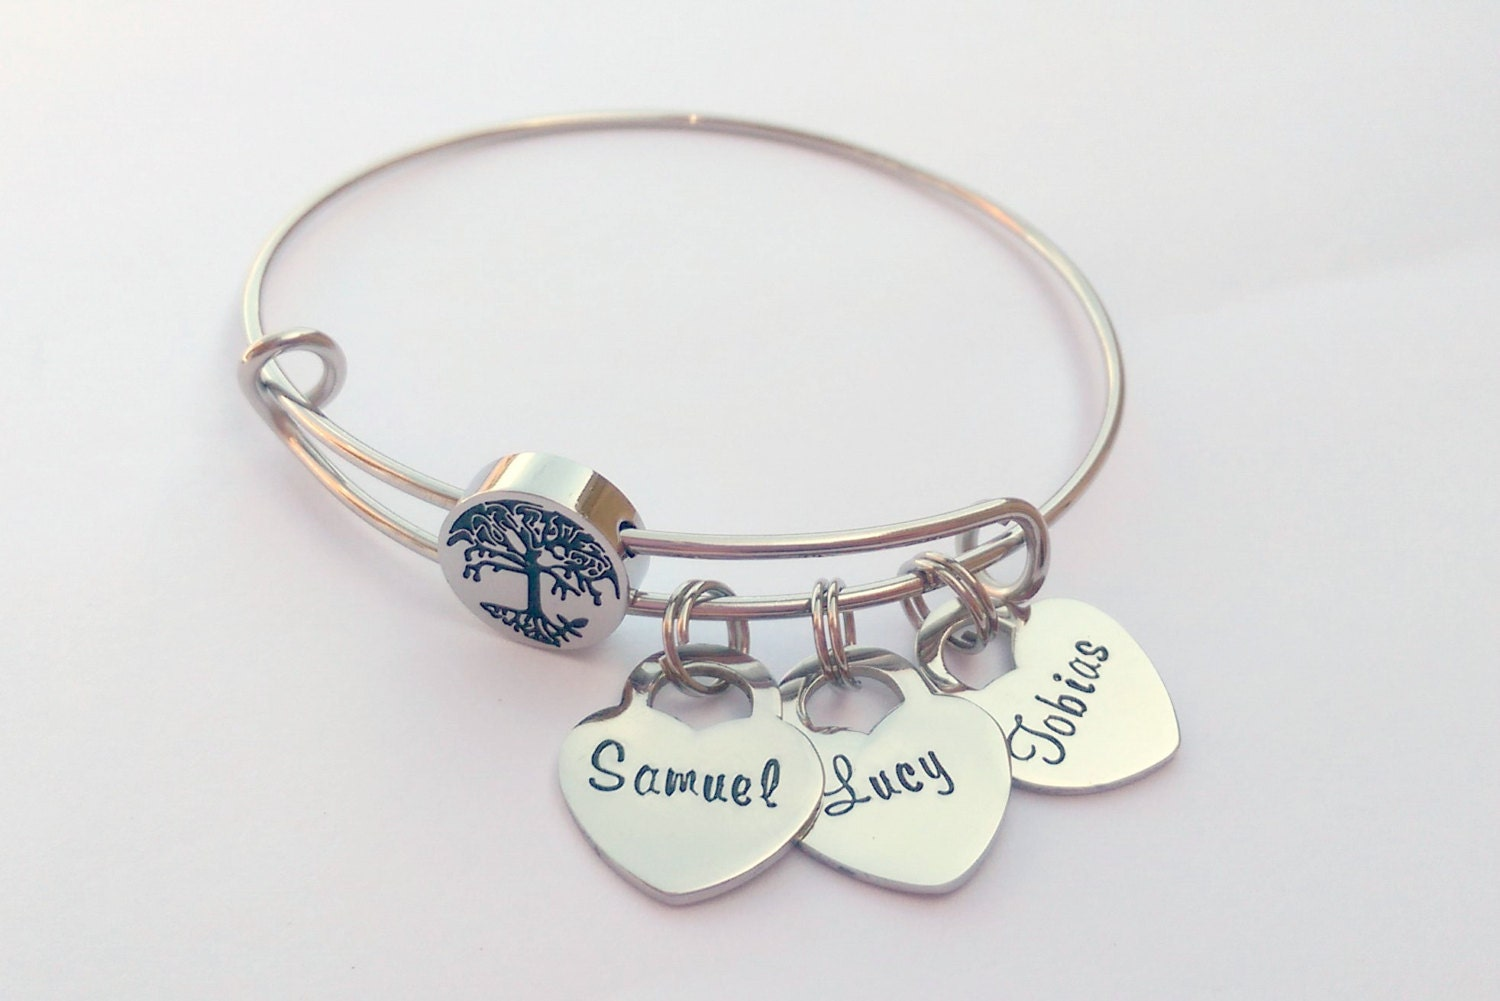 Personalised family tree bracelet - personalised charm bracelet - personalized heart charm bracelet - personalised gift for mom, mum, her